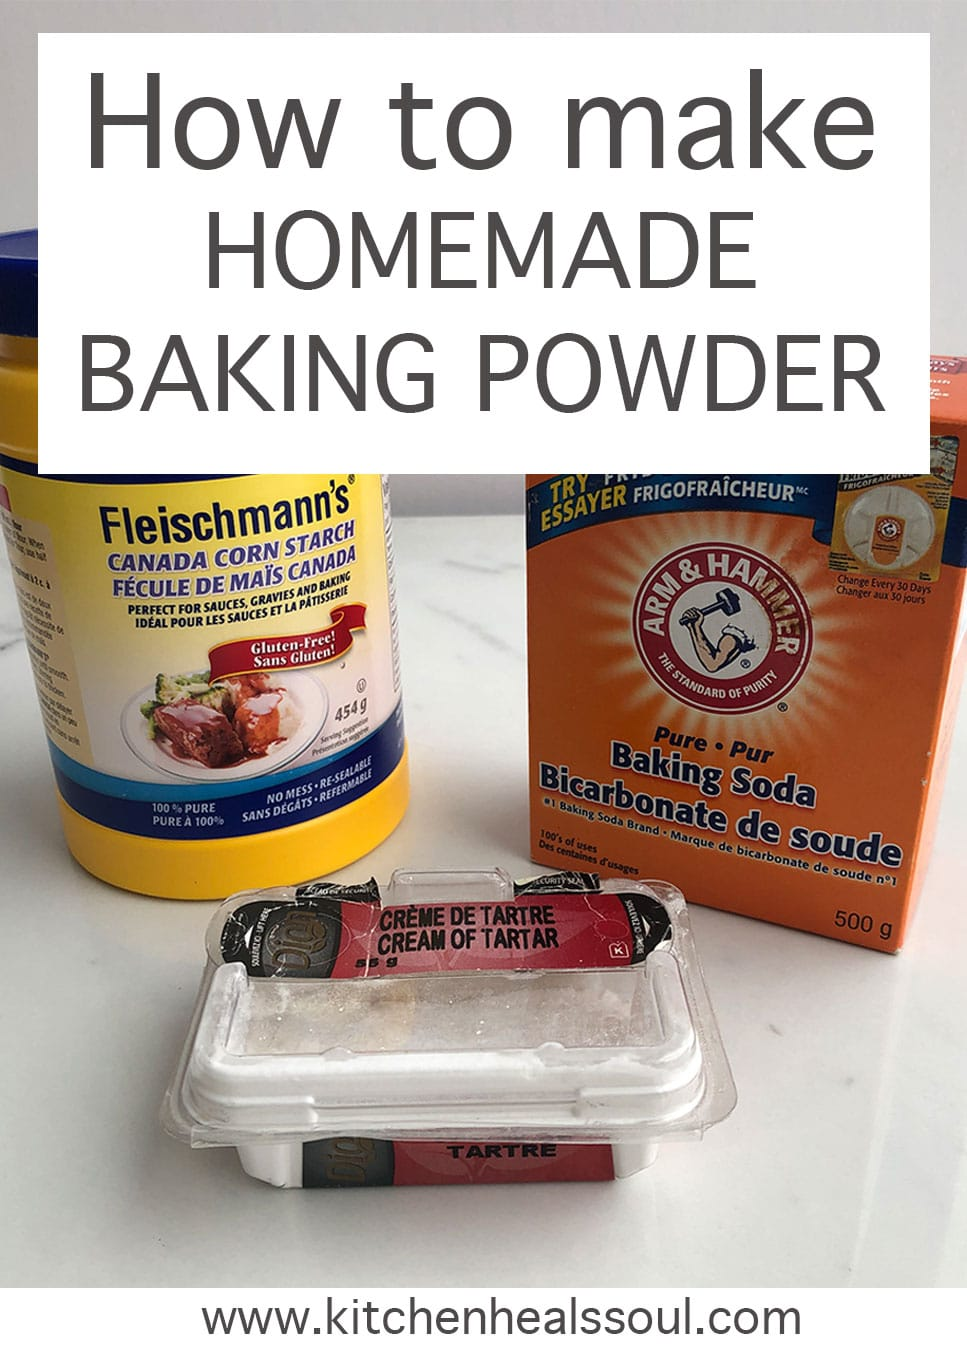 How to make homemade baking powder from containers of cornstarch, baking soda, and cream of tartar